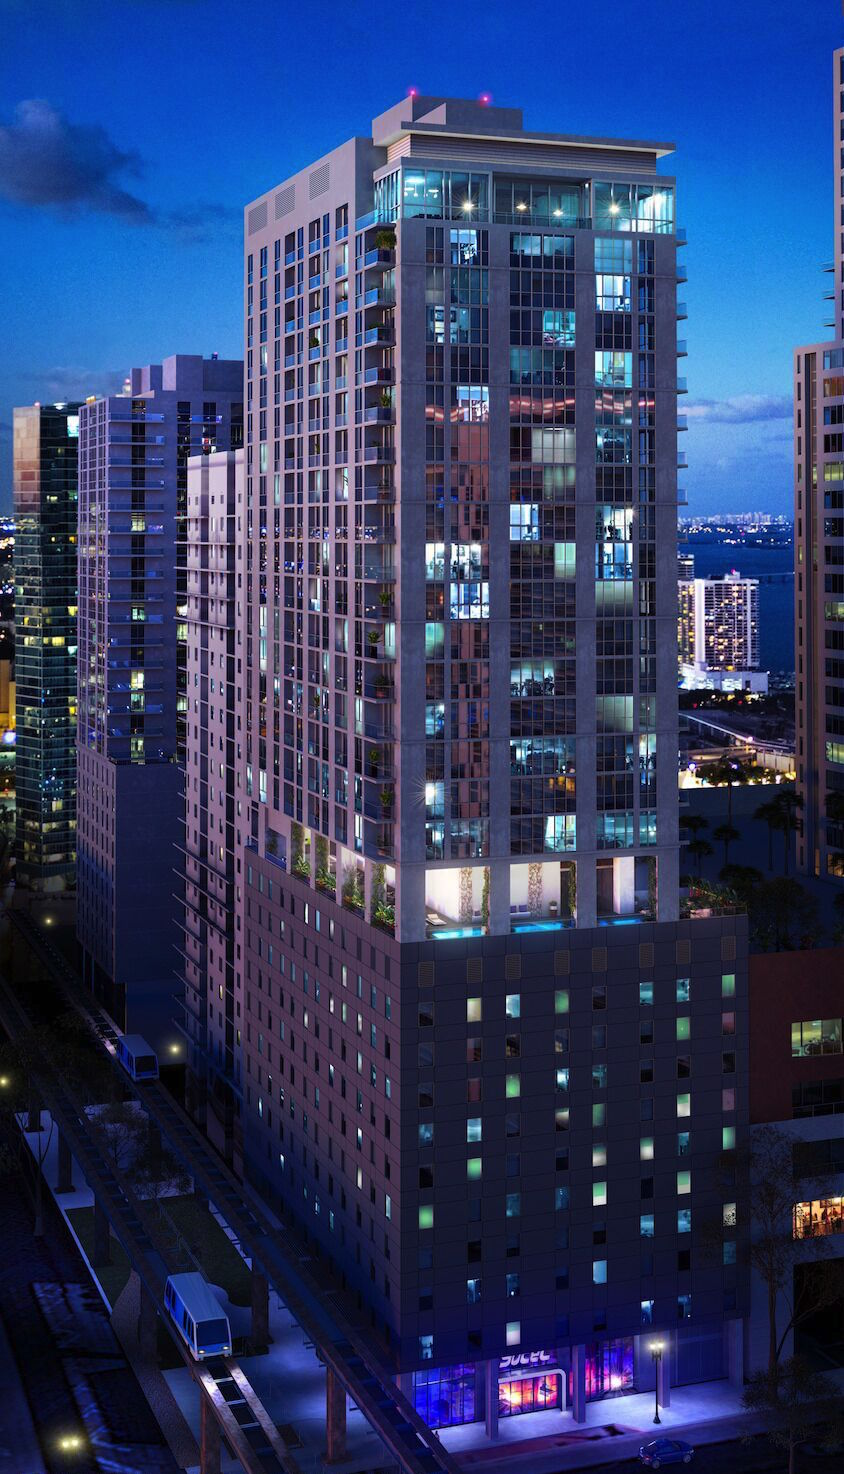 YOTELPAD Miami, AQARAT, Stantec, Aria Development Group